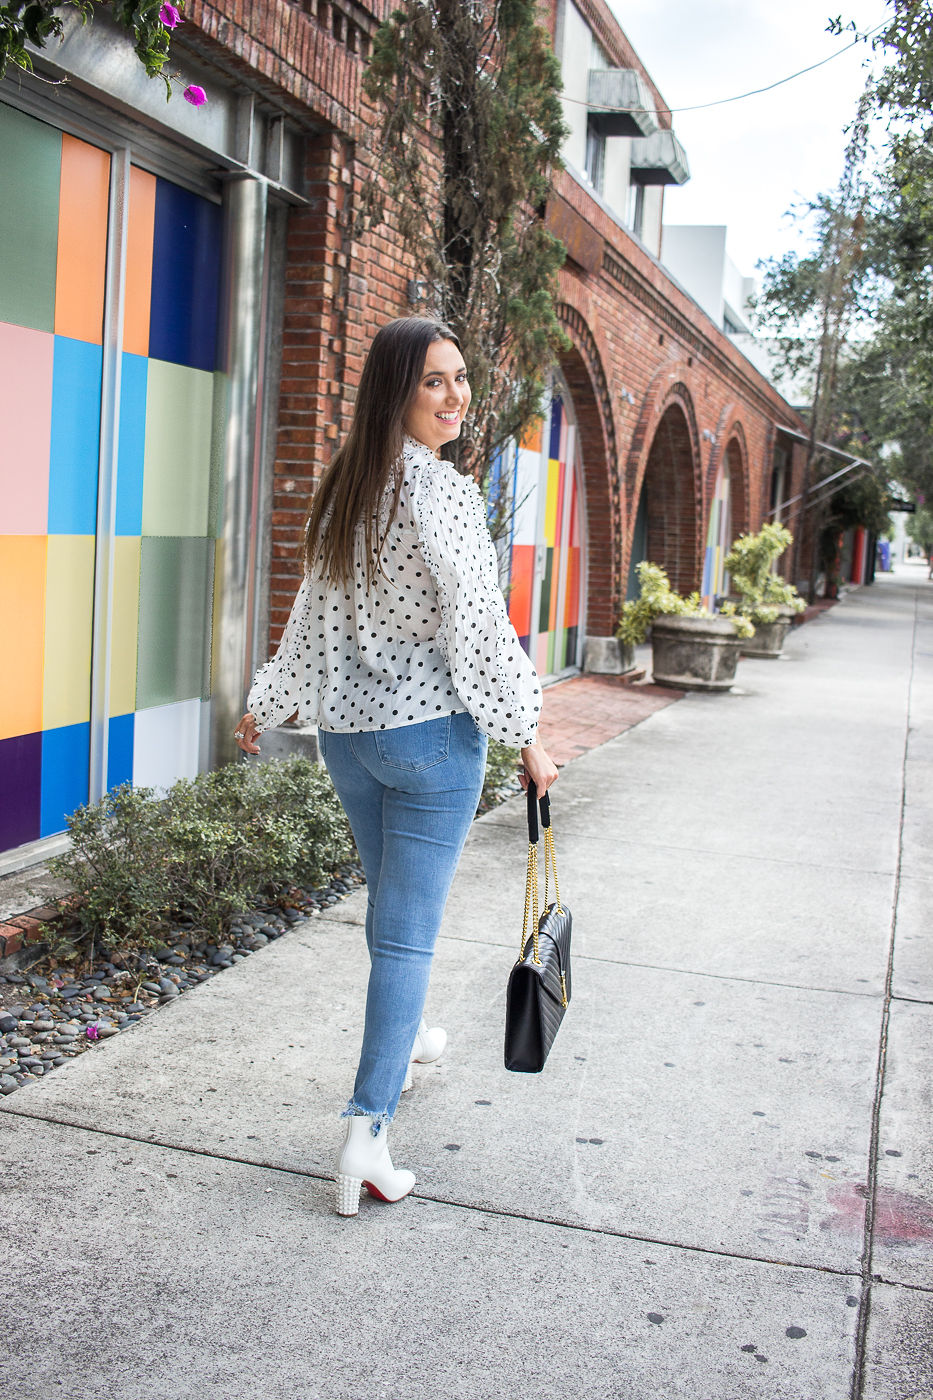 How To Wear White Boots All Year, white booties, white boots, christina louboutin suzi, louboutin white suzi booties, ulla johnson polkadot top, polkadot lace blouse, jbrand teardrop jeans, saint laurent monogram shoulder bag